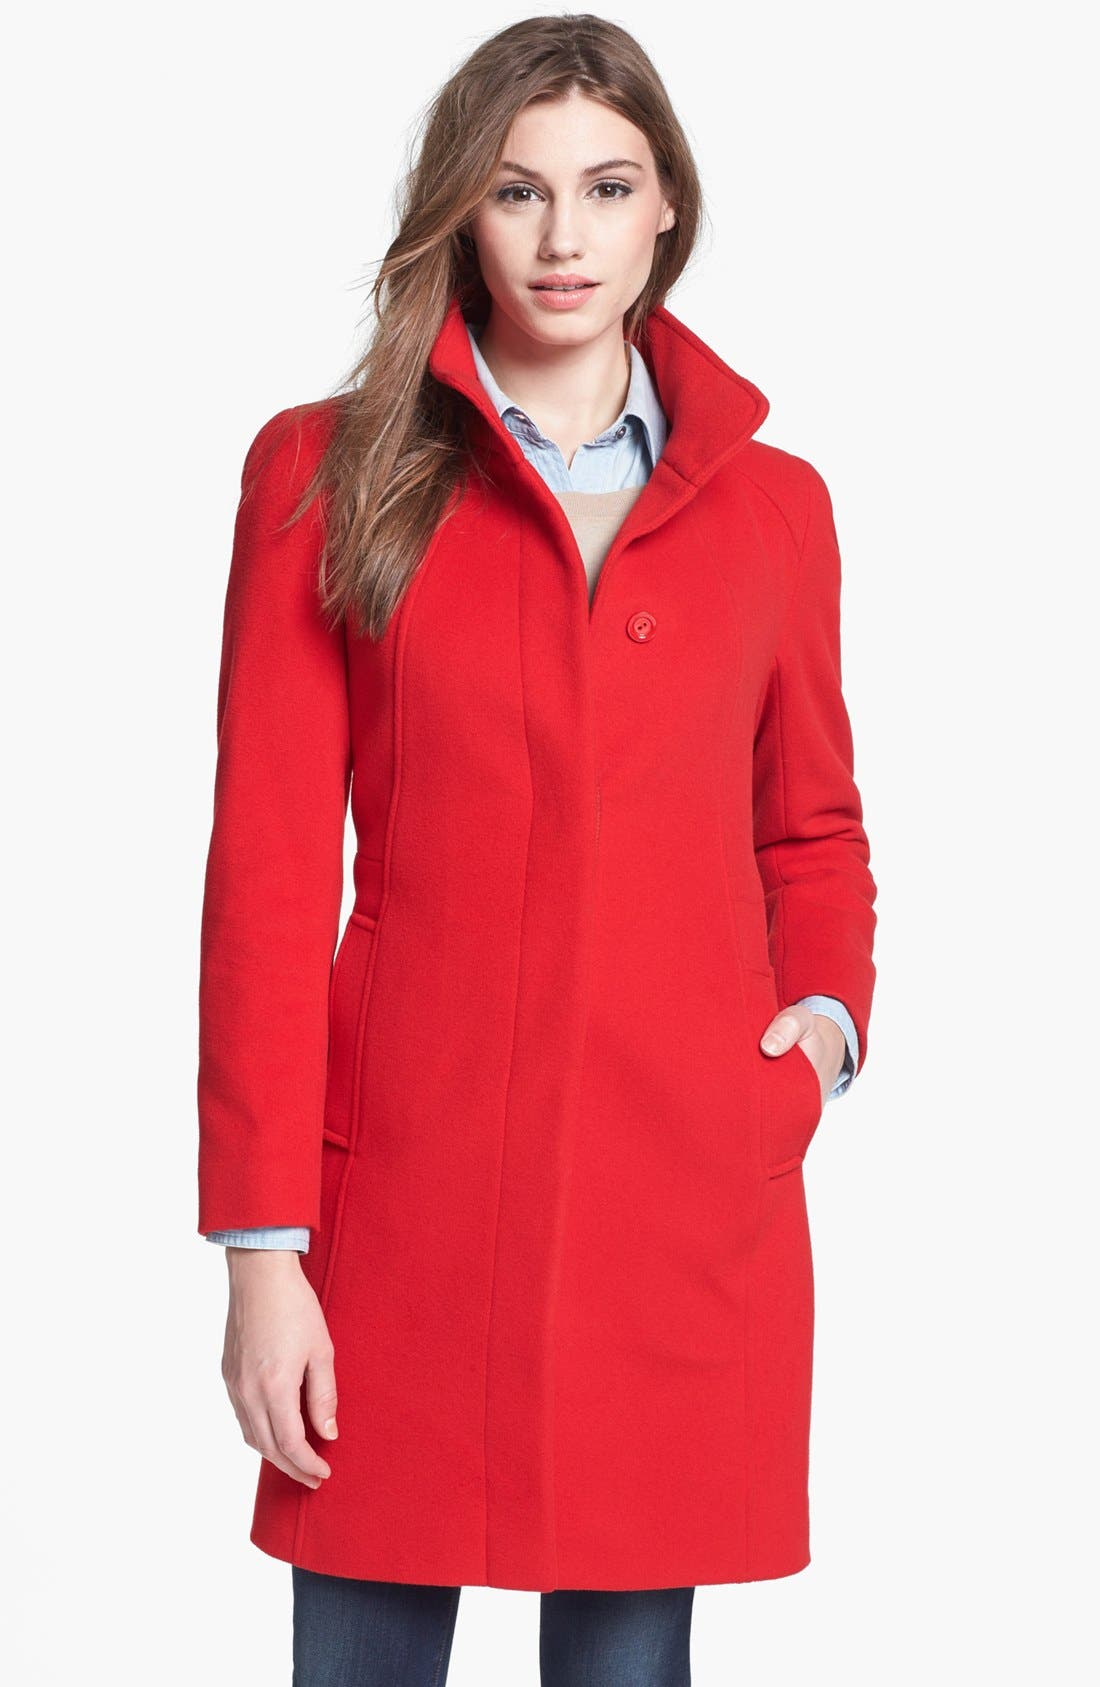 Main Image - Cinzia Rocca Due Stand Collar Wool & Cashmere Blend Walking Coat (Petite)